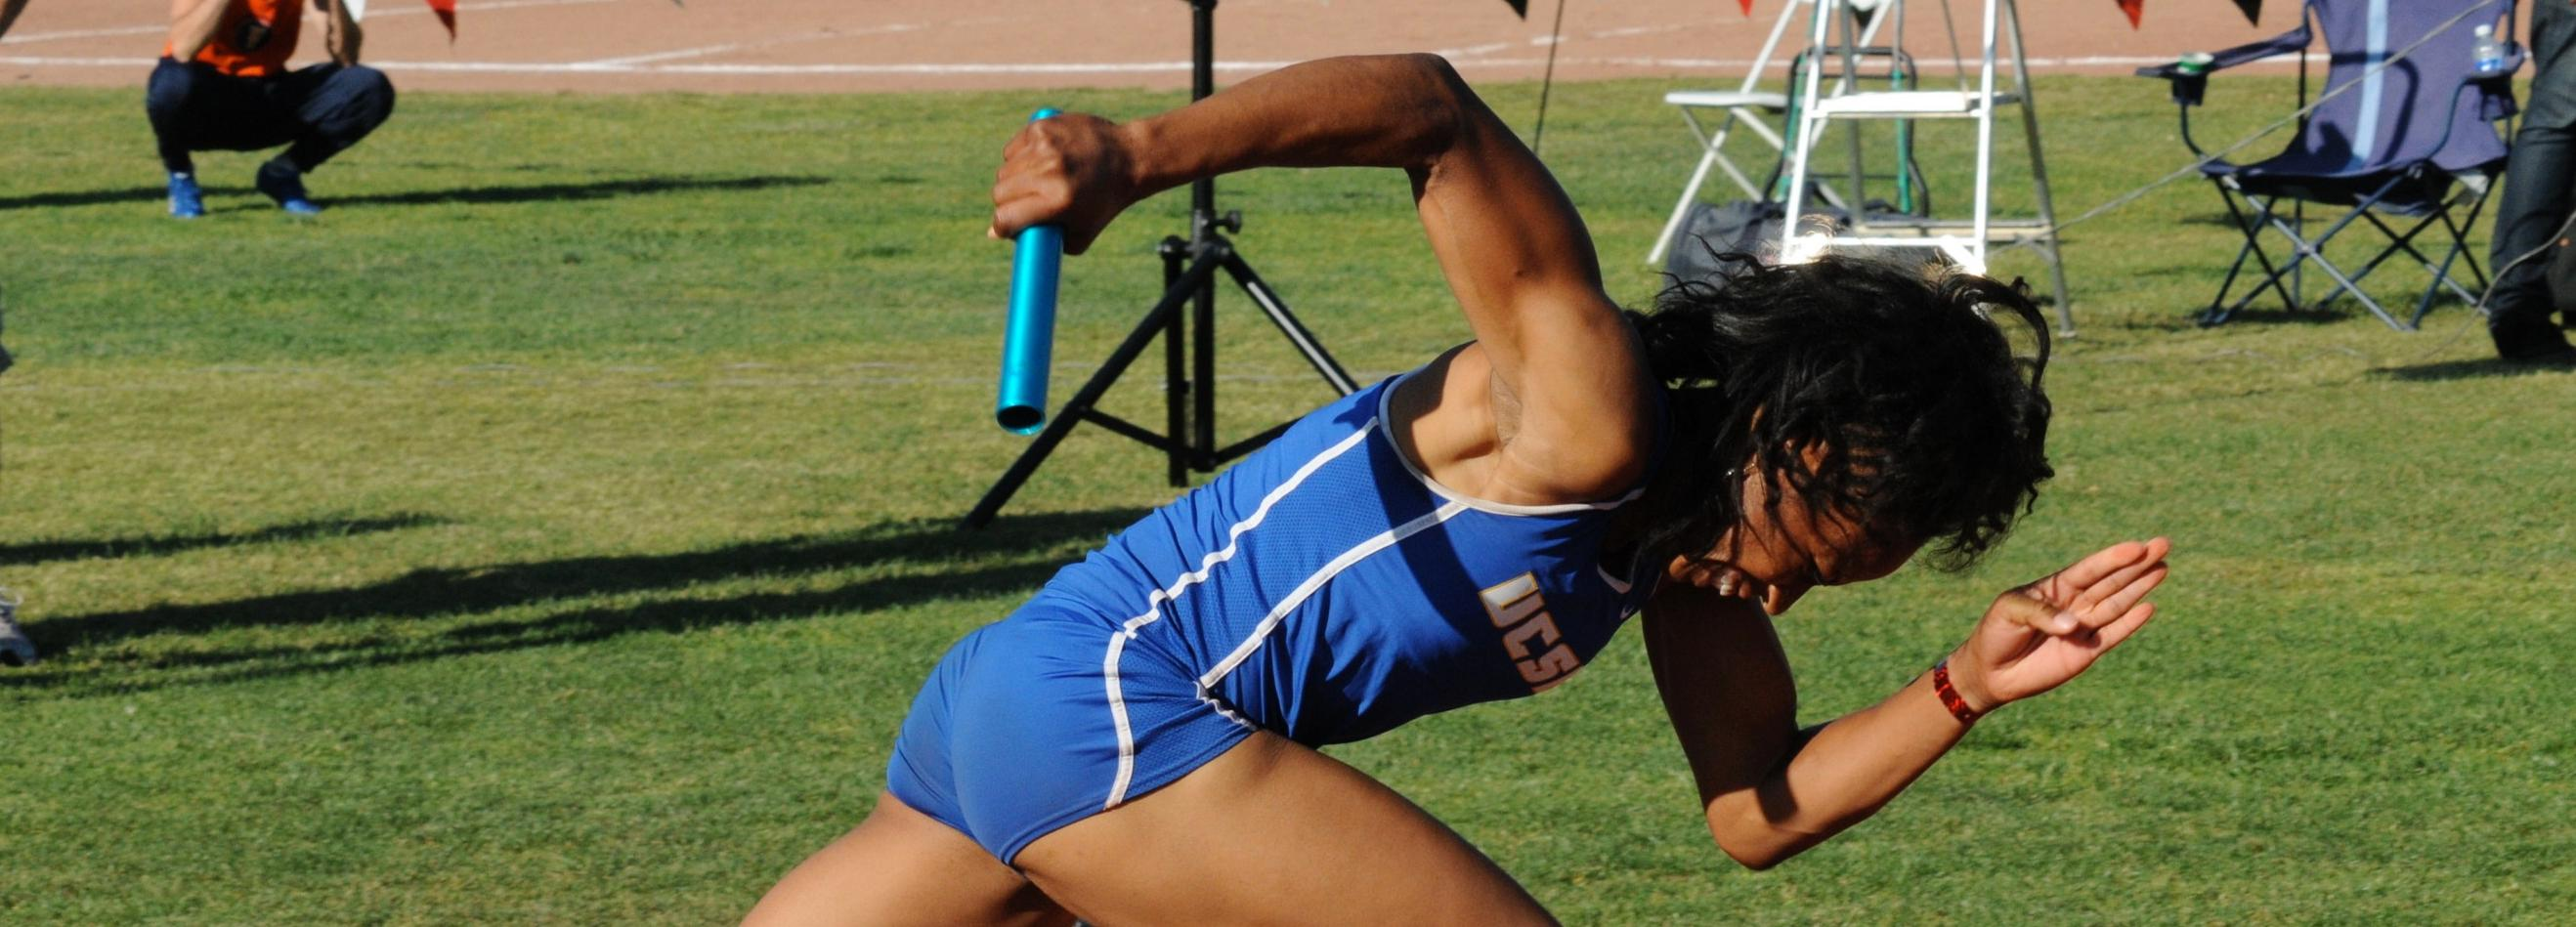 Nwaba Places Eighth in Heptathlon at USA Nationals